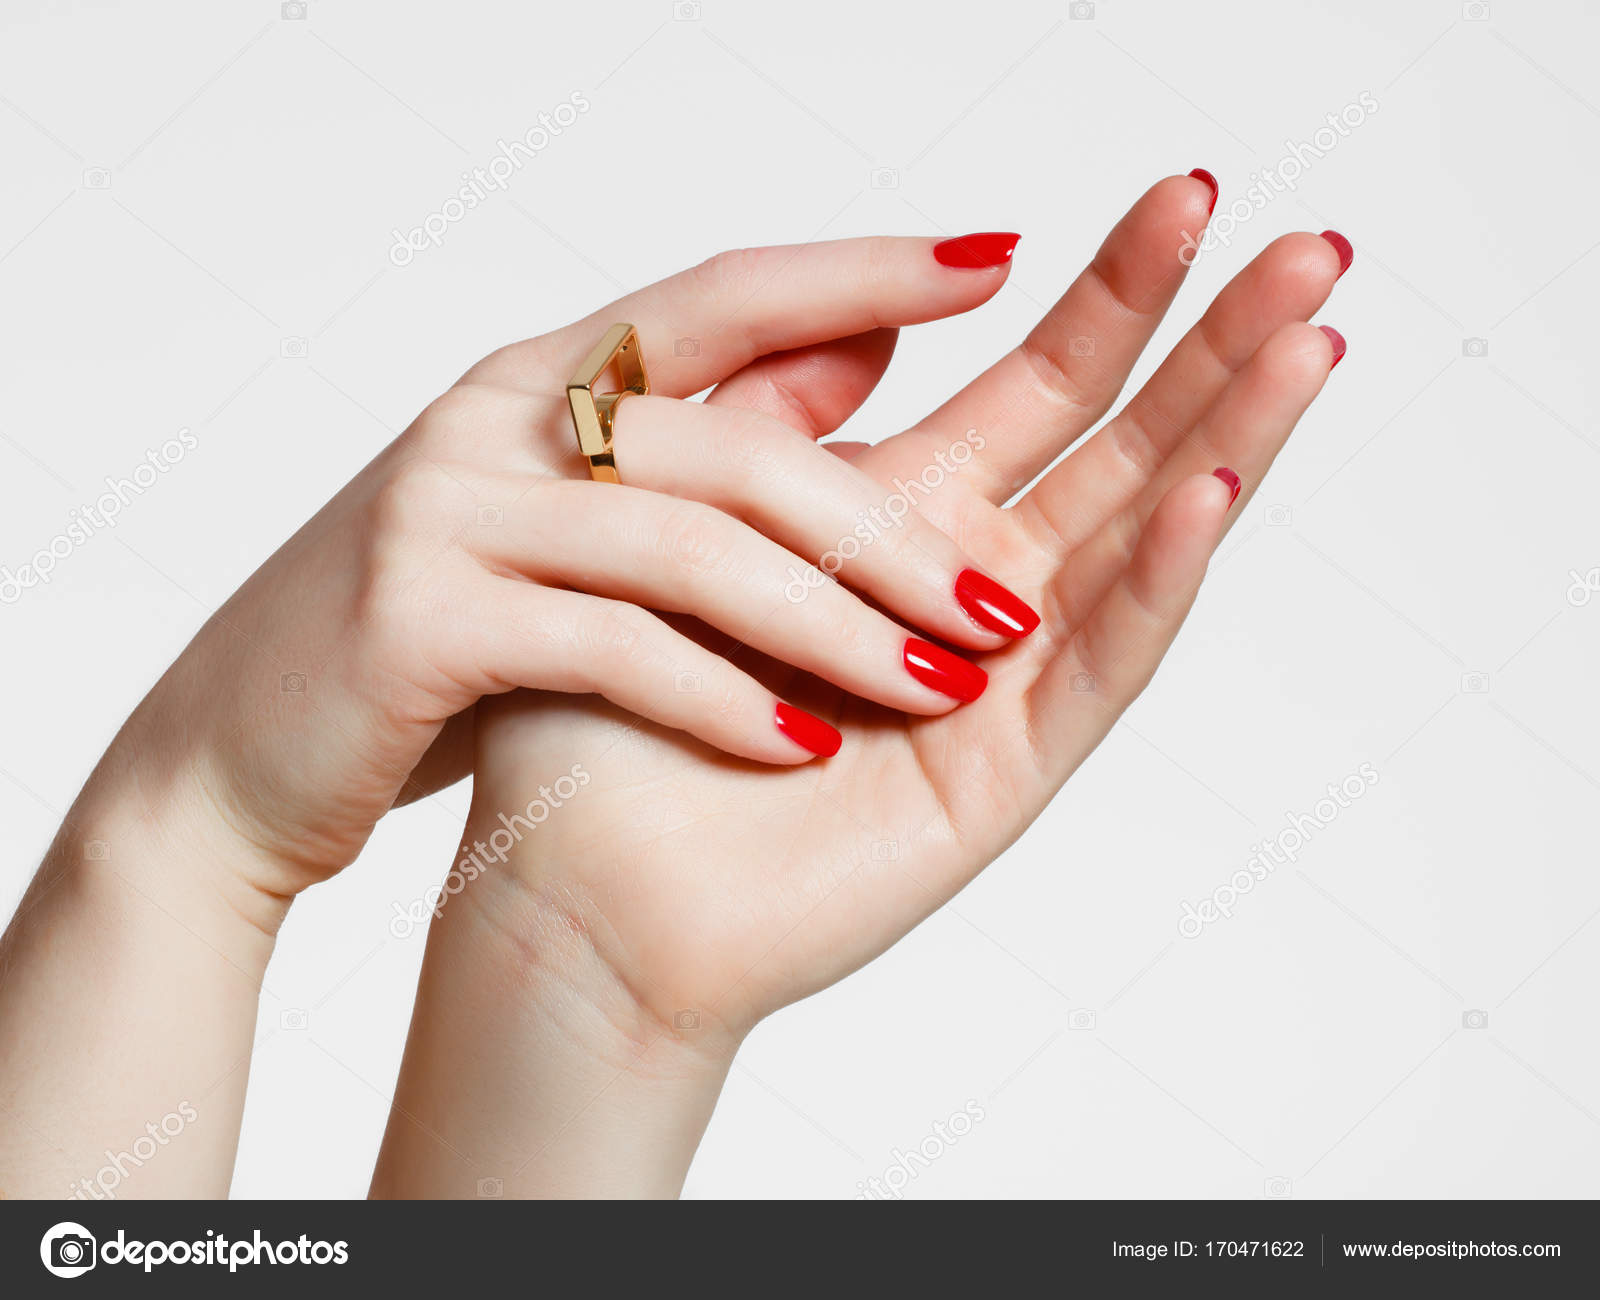 Beauty Delicate Hands With Manicure Close Up Beautiful Female Fingers Red Manicured Nails And Fashionable Gold Ring